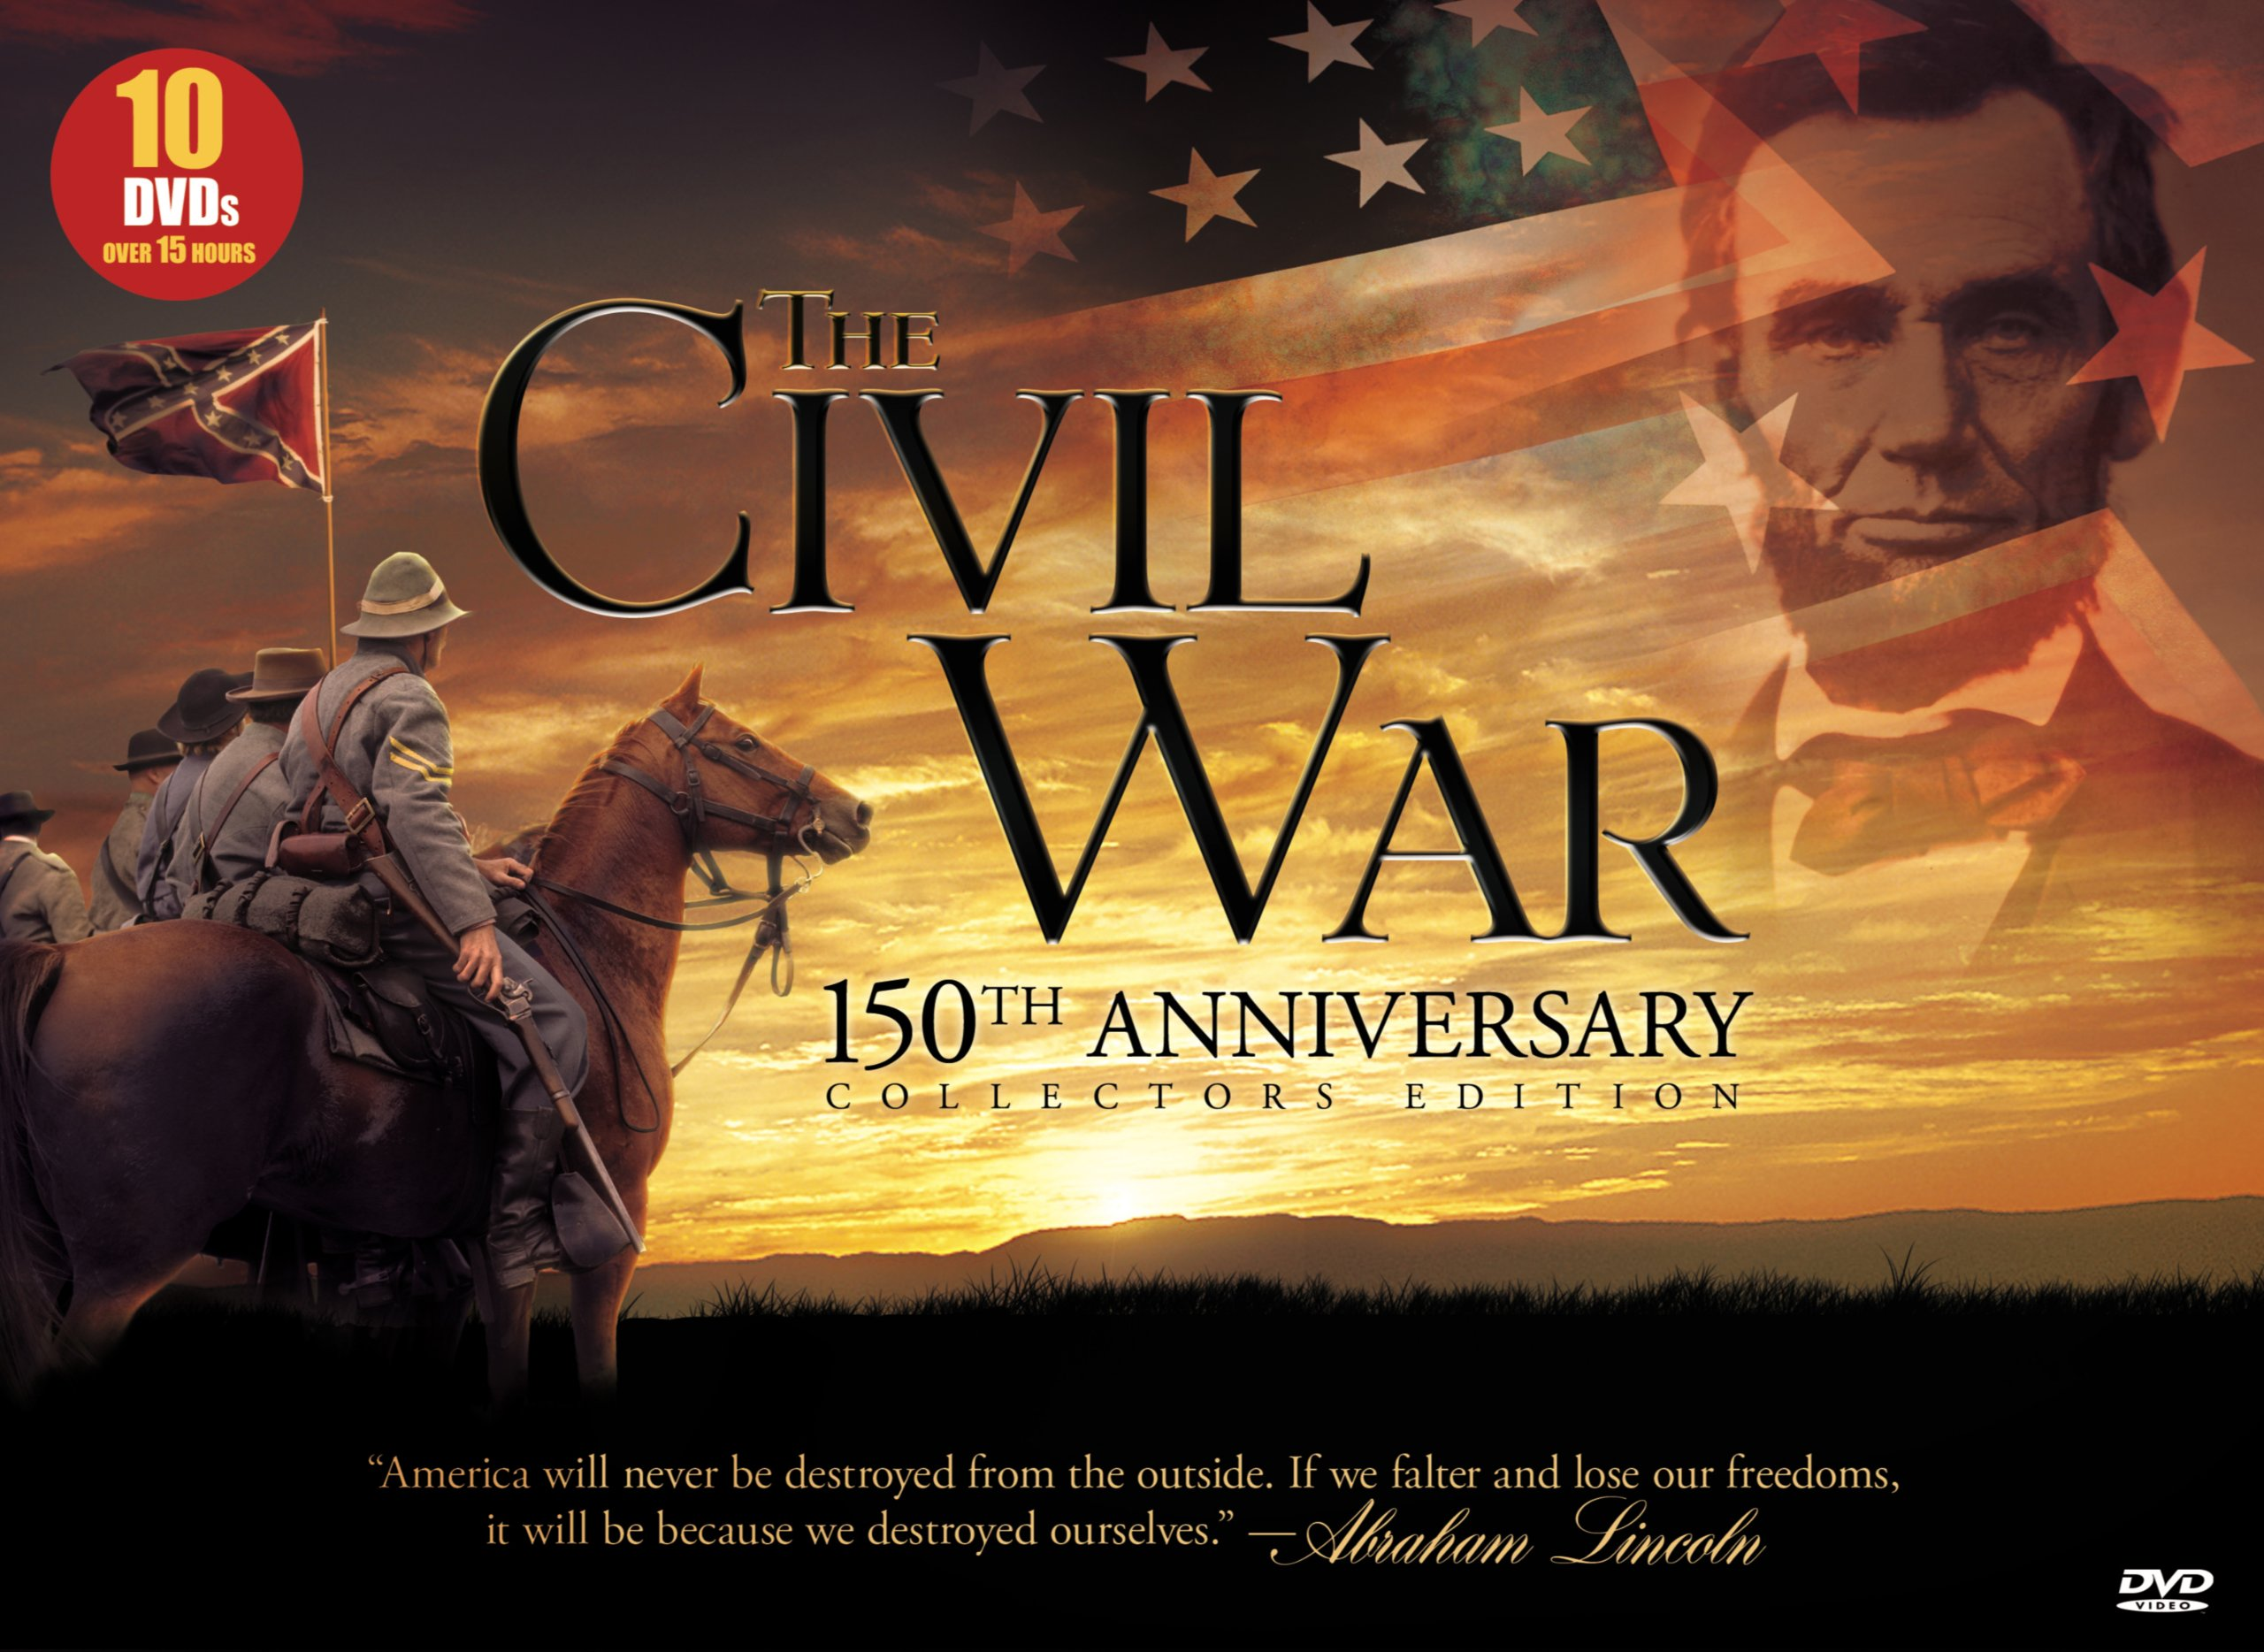 The Civil War: 150th Anniversary Collector's Edition by Image Entertainment